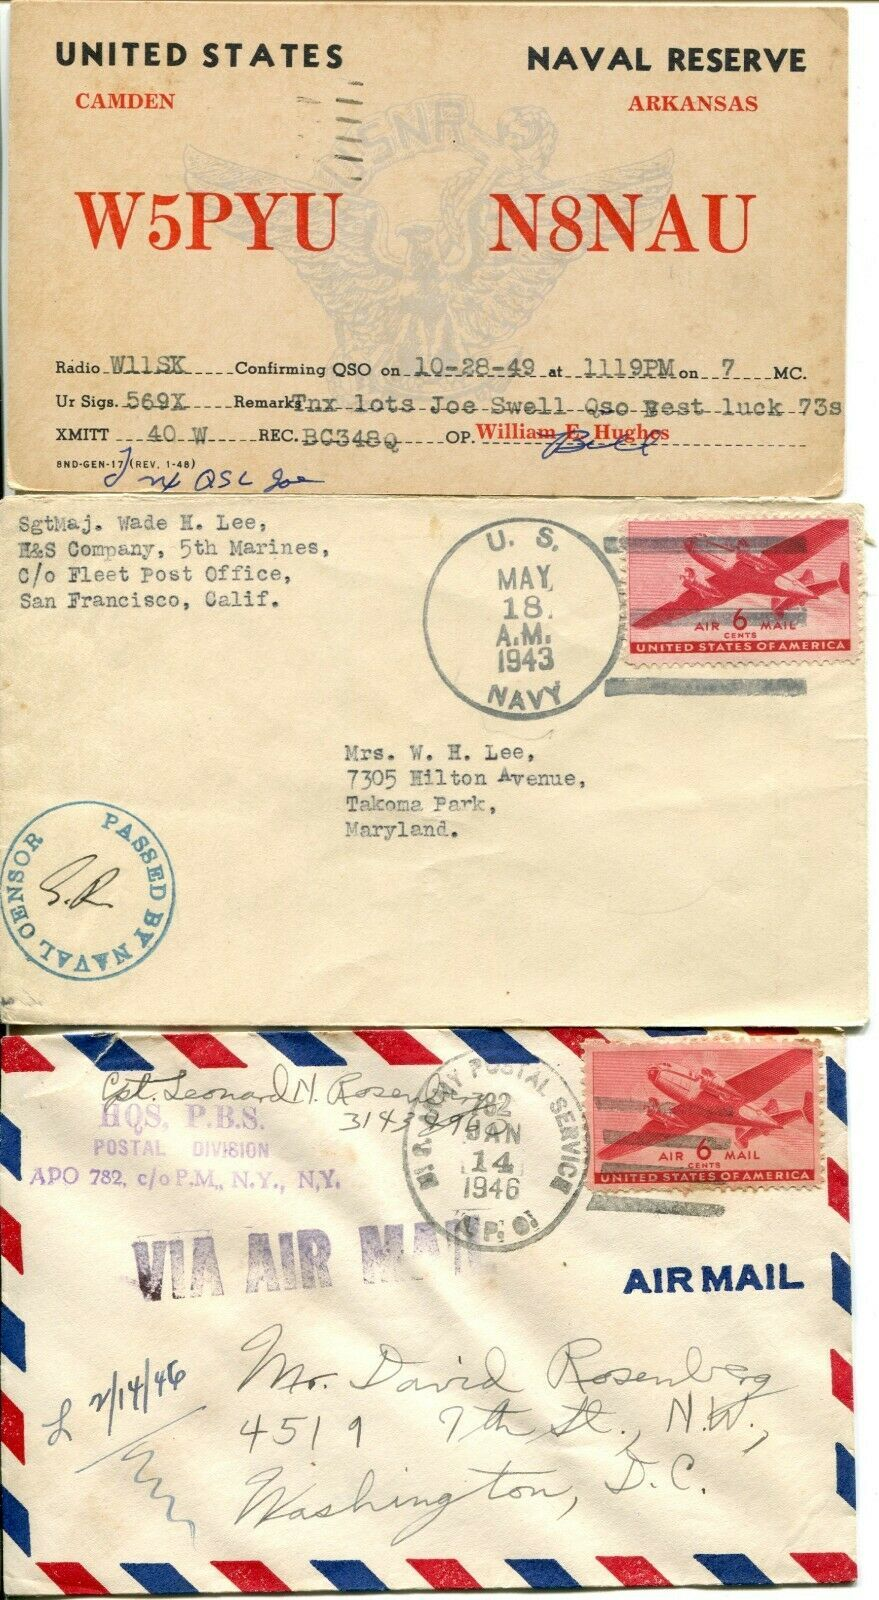 US Army Airmail WWII APO Navy Military Cover Examined Postage Collection  image 2